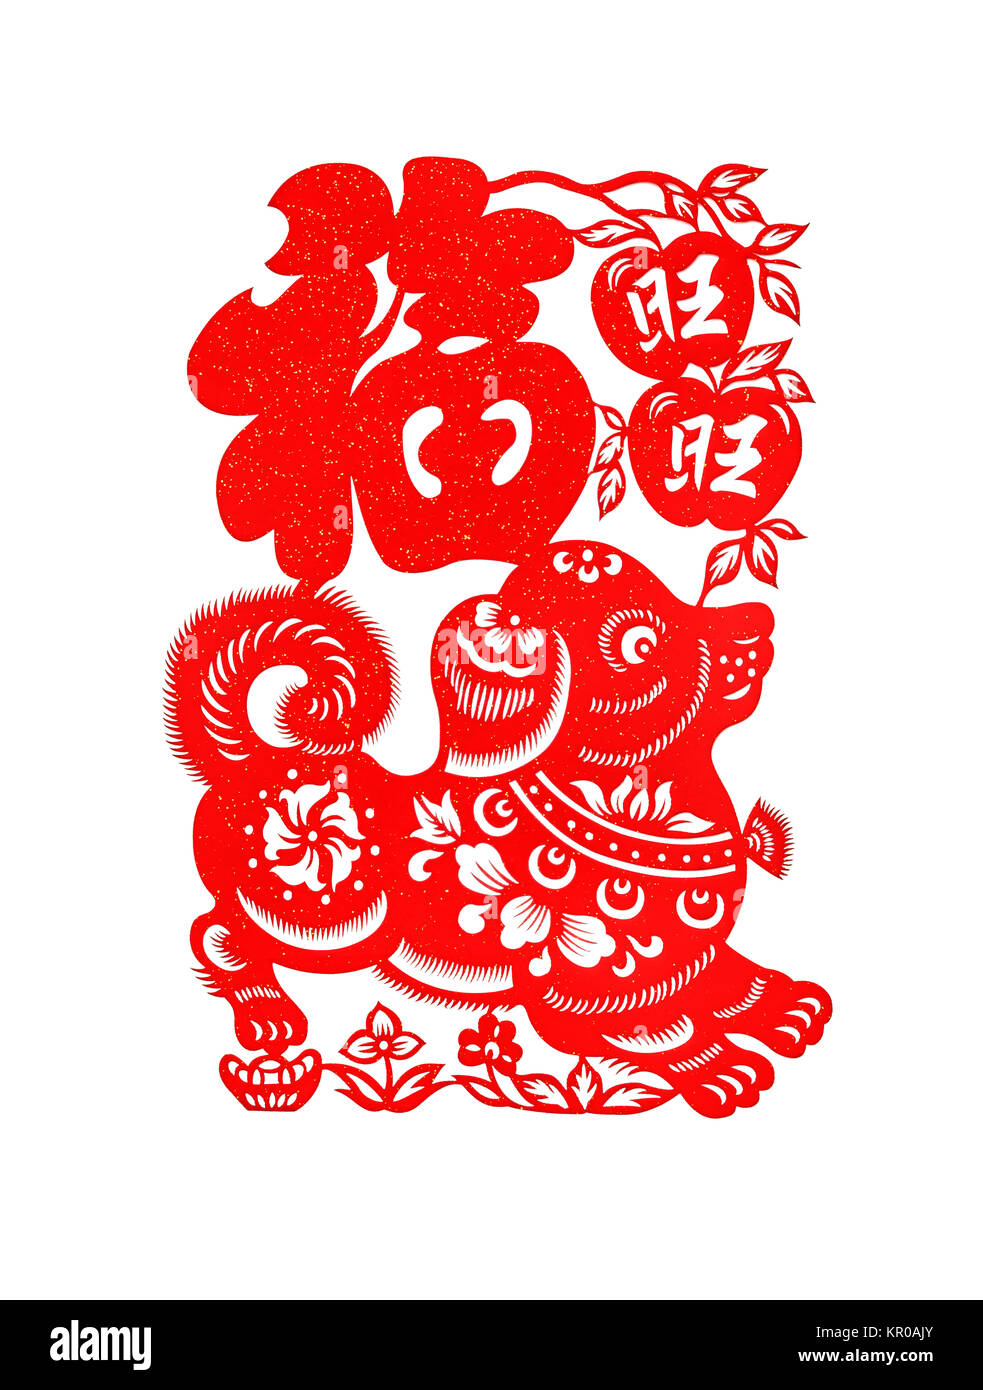 2018 chinese new year illustration with white symbol on shiny stock red flat paper cut on white as a symbol of chinese new year of the buycottarizona Gallery